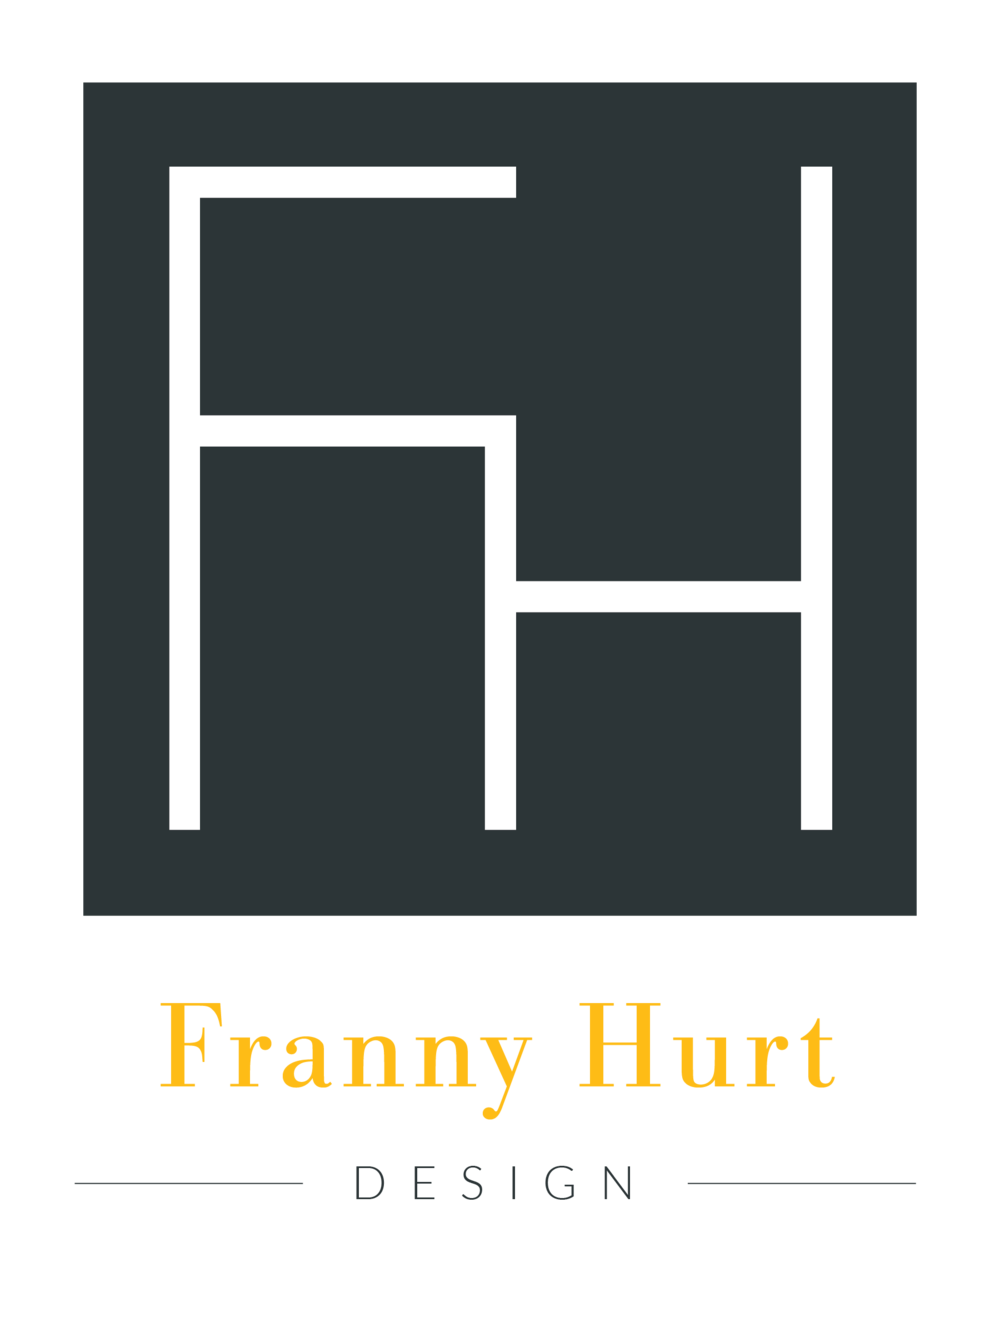 Franny Hurt Design new.png